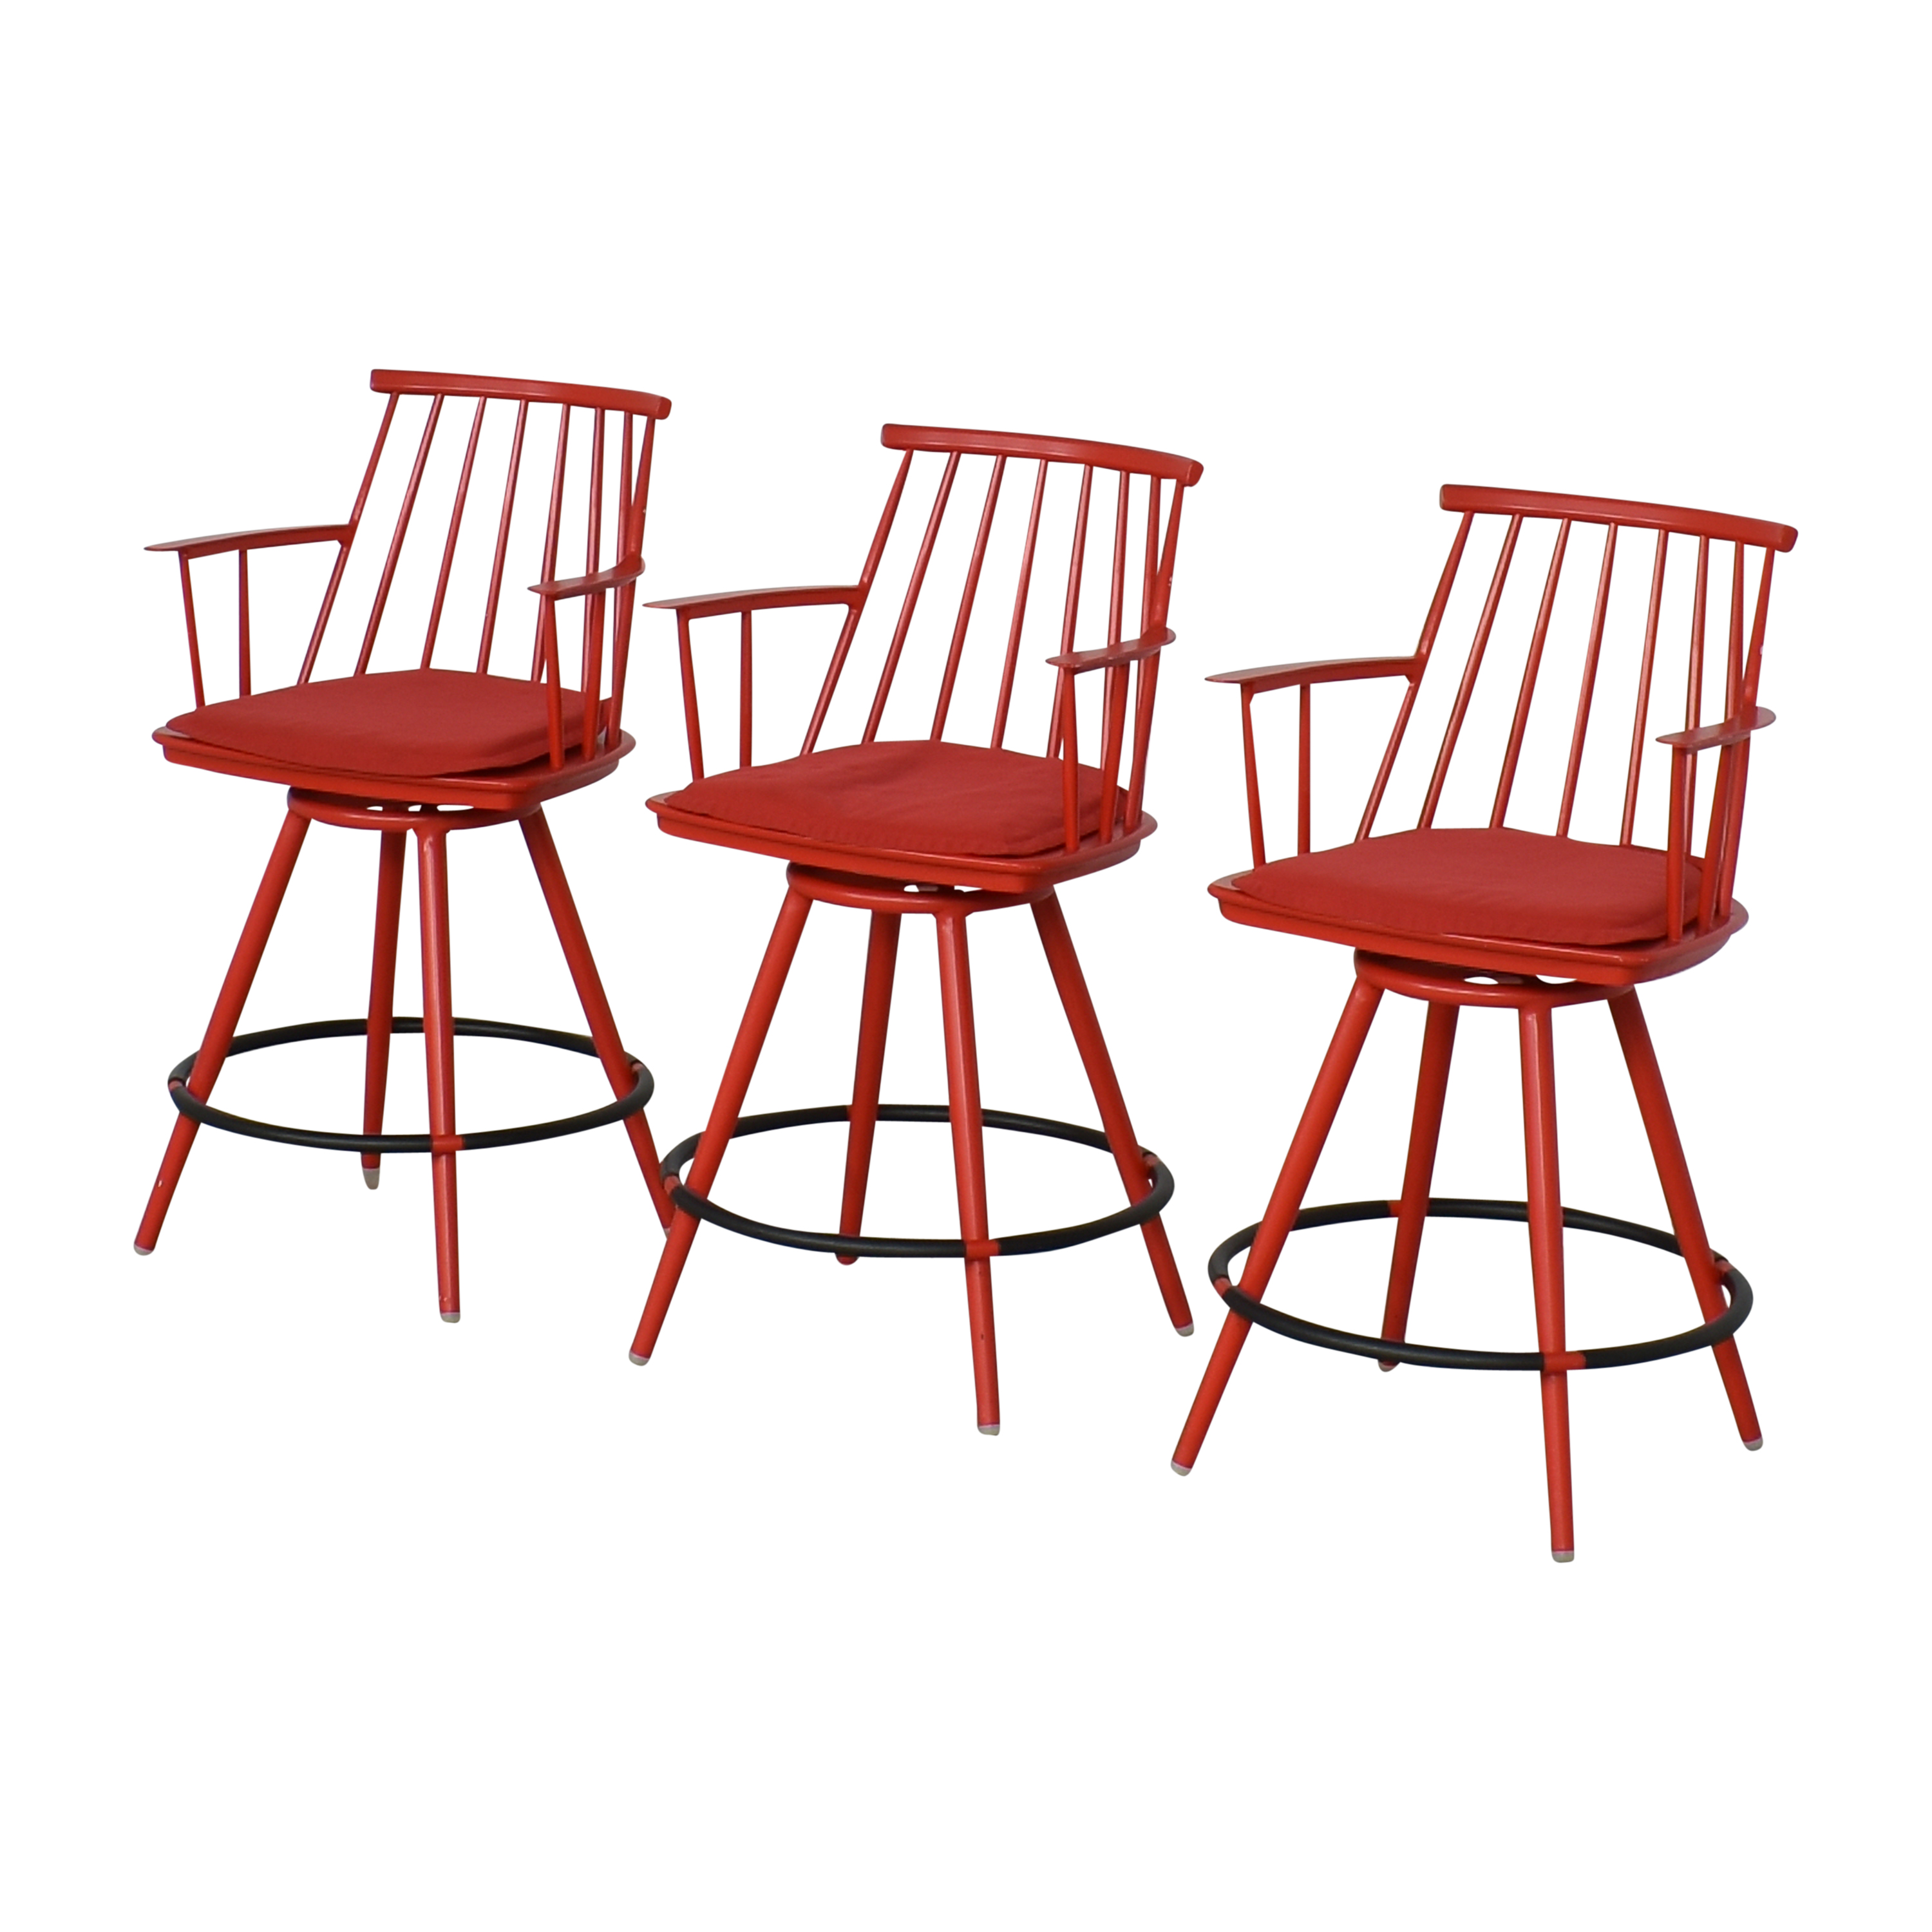 Crate & Barrel Crate & Barrel Union Swivel Counter Stools with Cushions dimensions